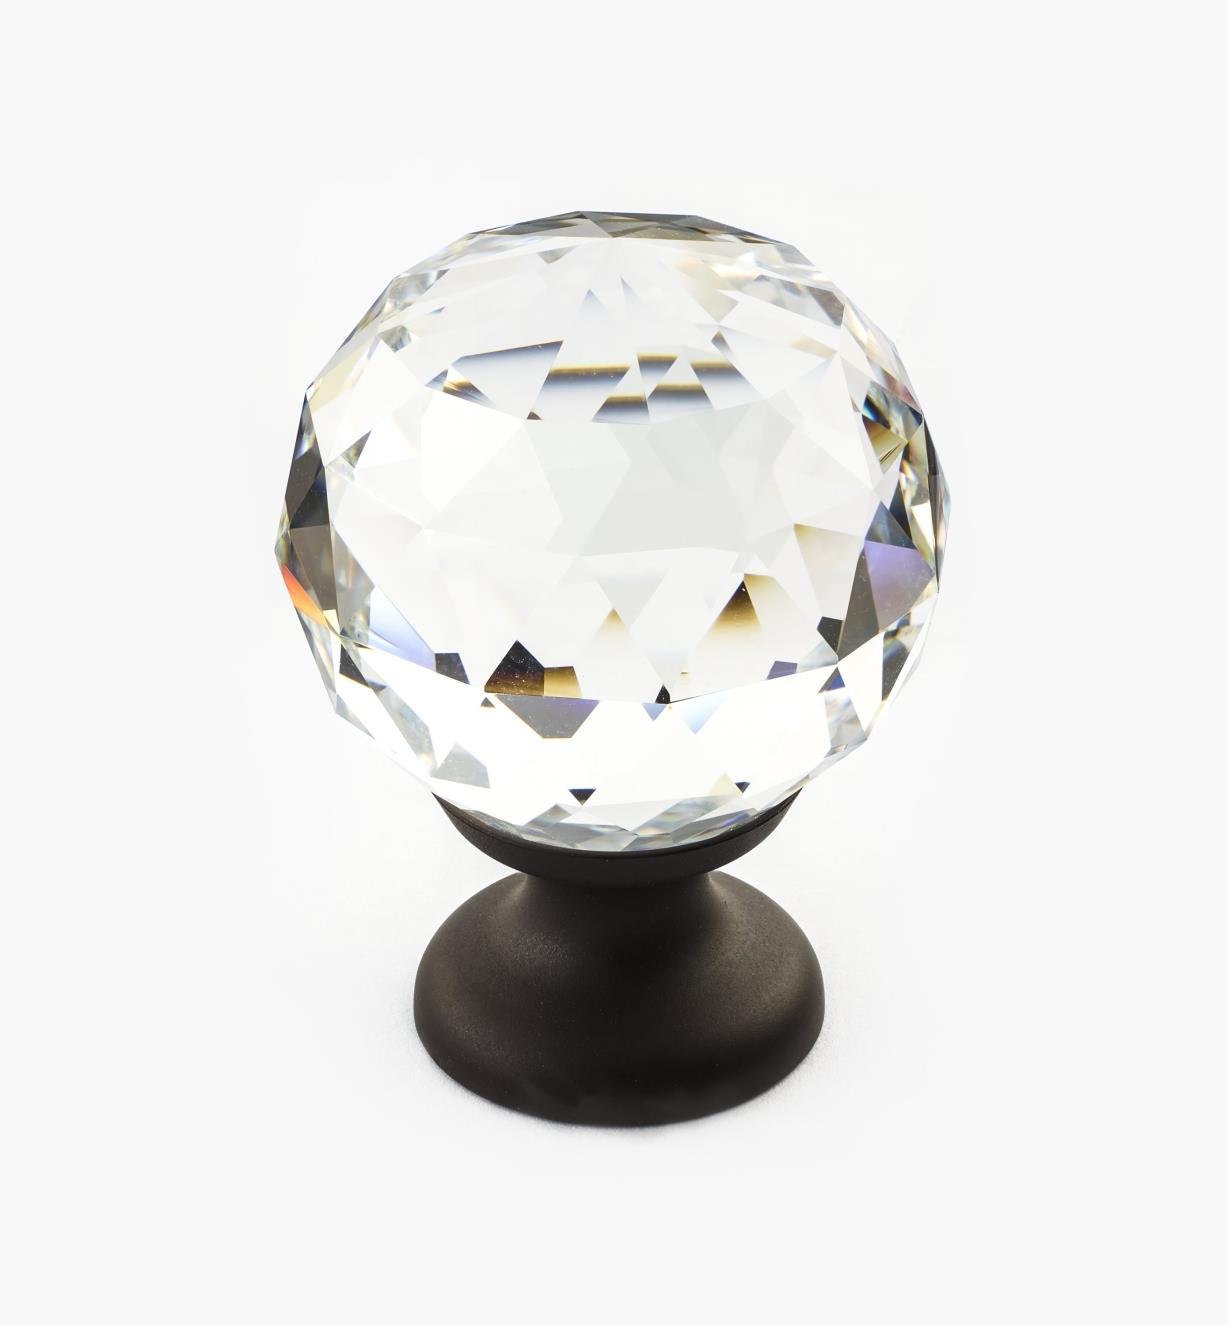 01A3451 - Large Faceted Glass Knob, ORB